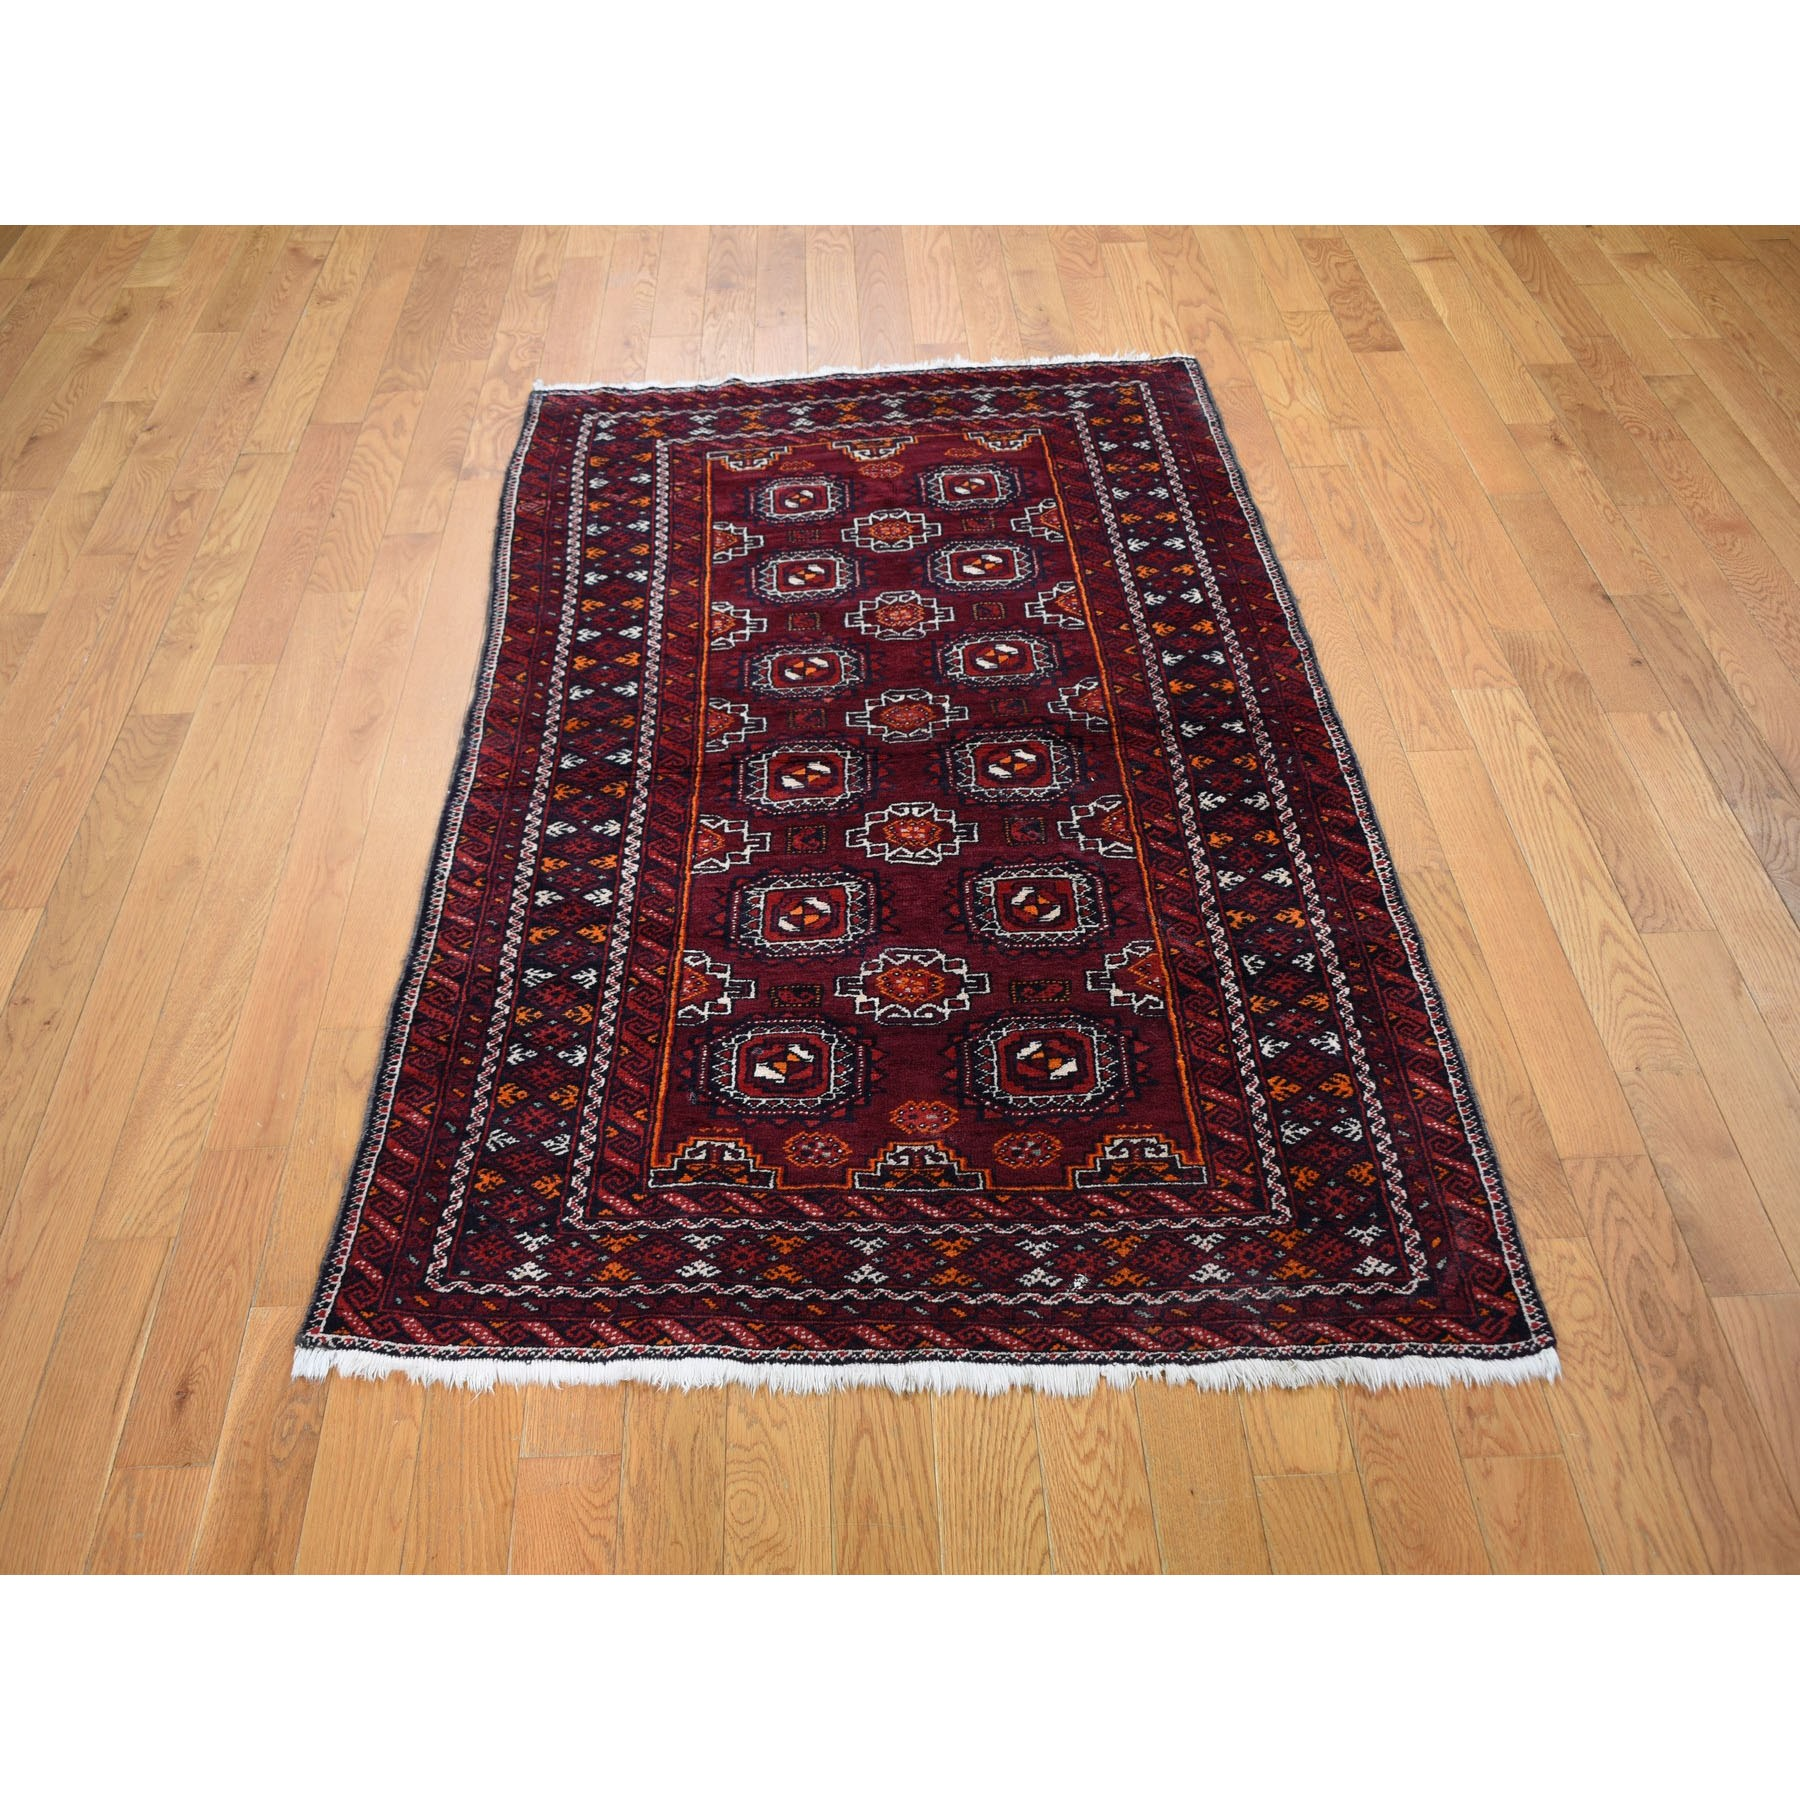 "3'4""x5'10"" Red Vintage Turkoman Gul Motif Pure Wool Hand Woven Oriental Rug"